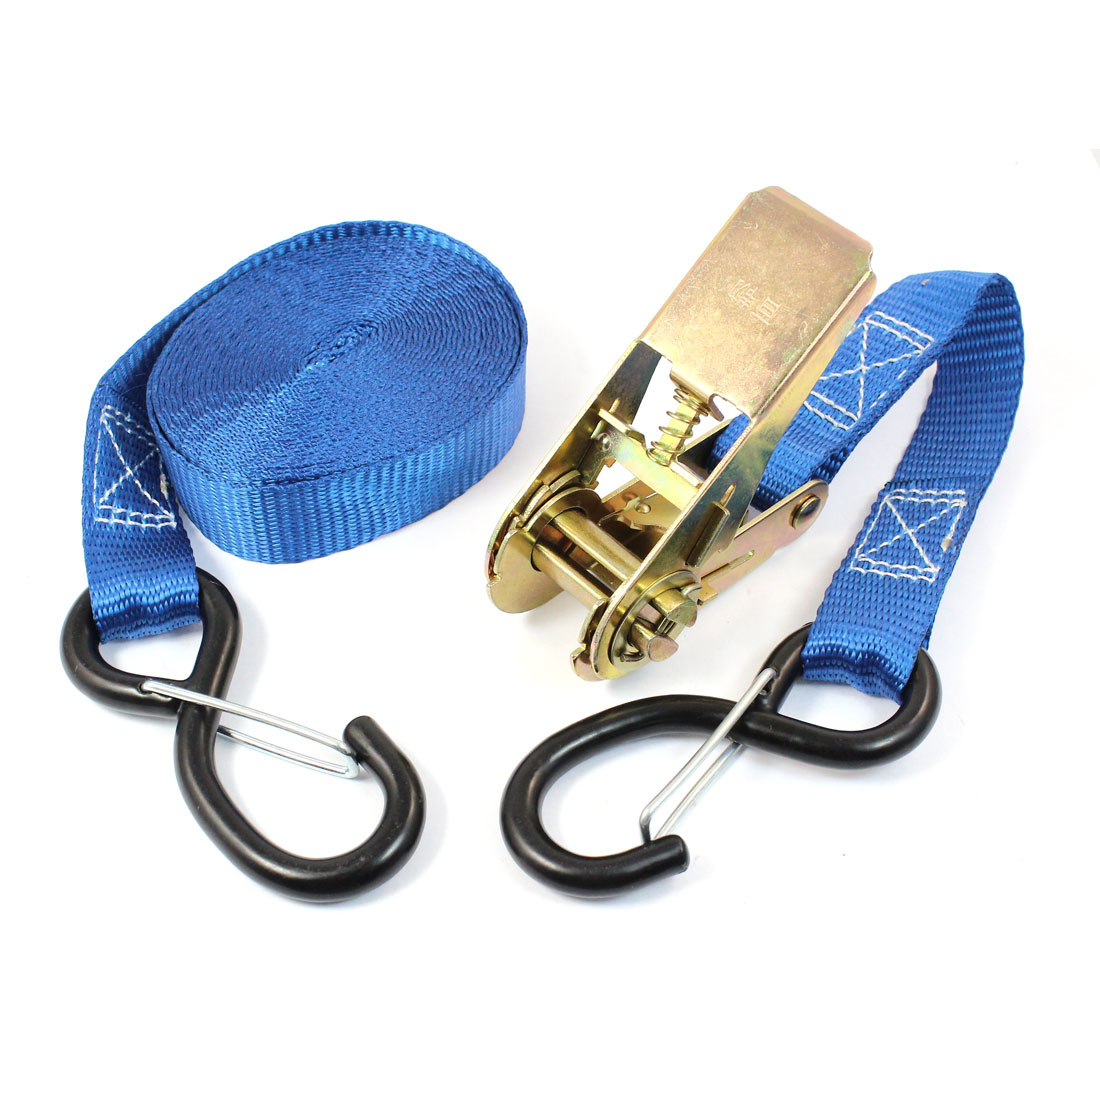 S Shape Metal Hook Cargo Binding Band Ratchet Tie Down Strap 5M 16ft Blue